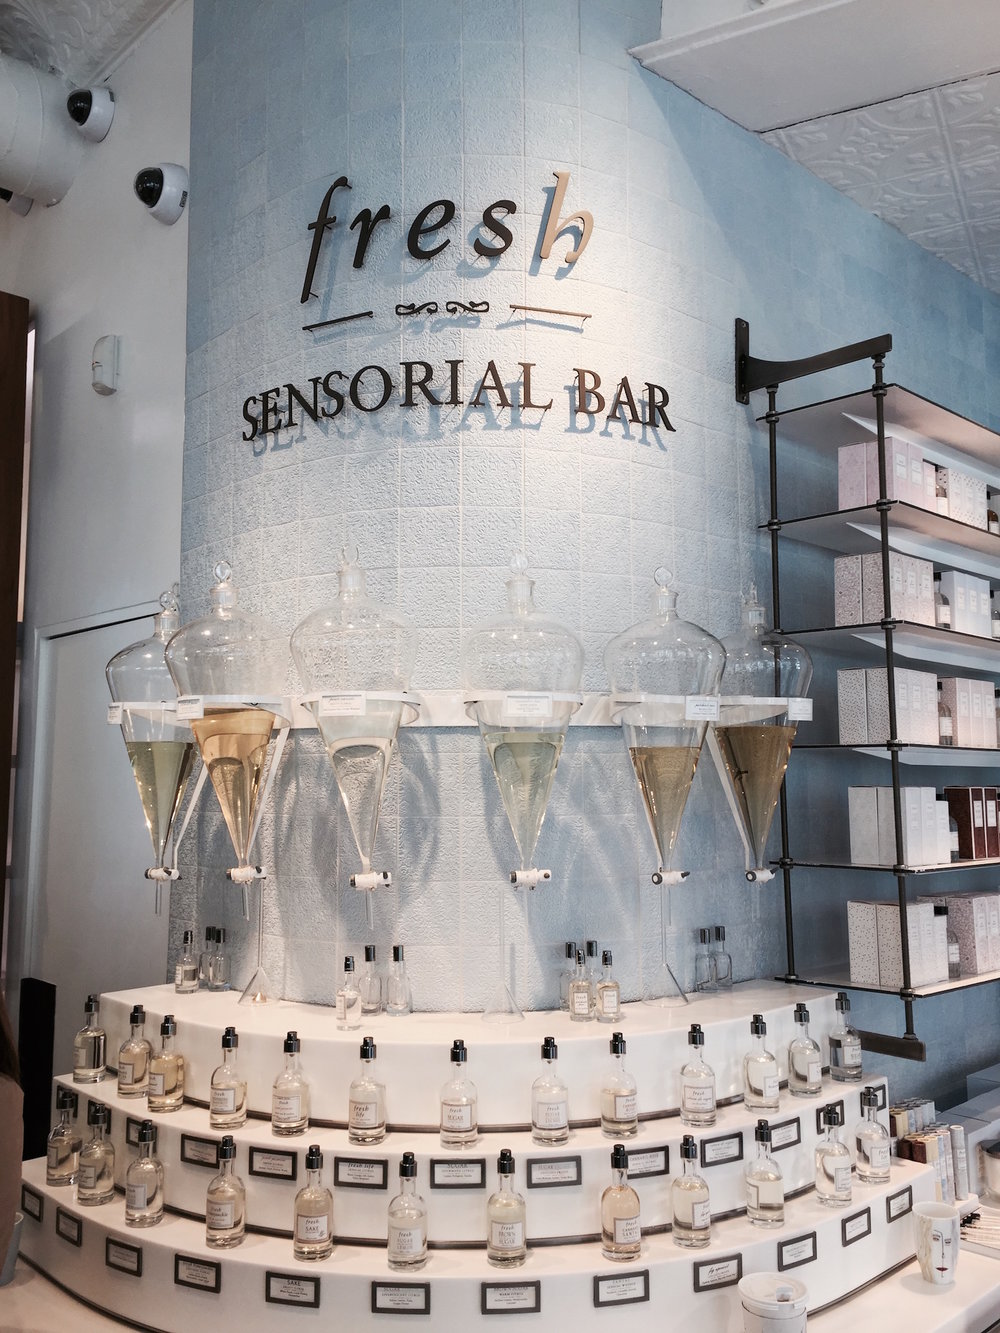 Sensorial Bar at the Fresh Store on Broadway, New York